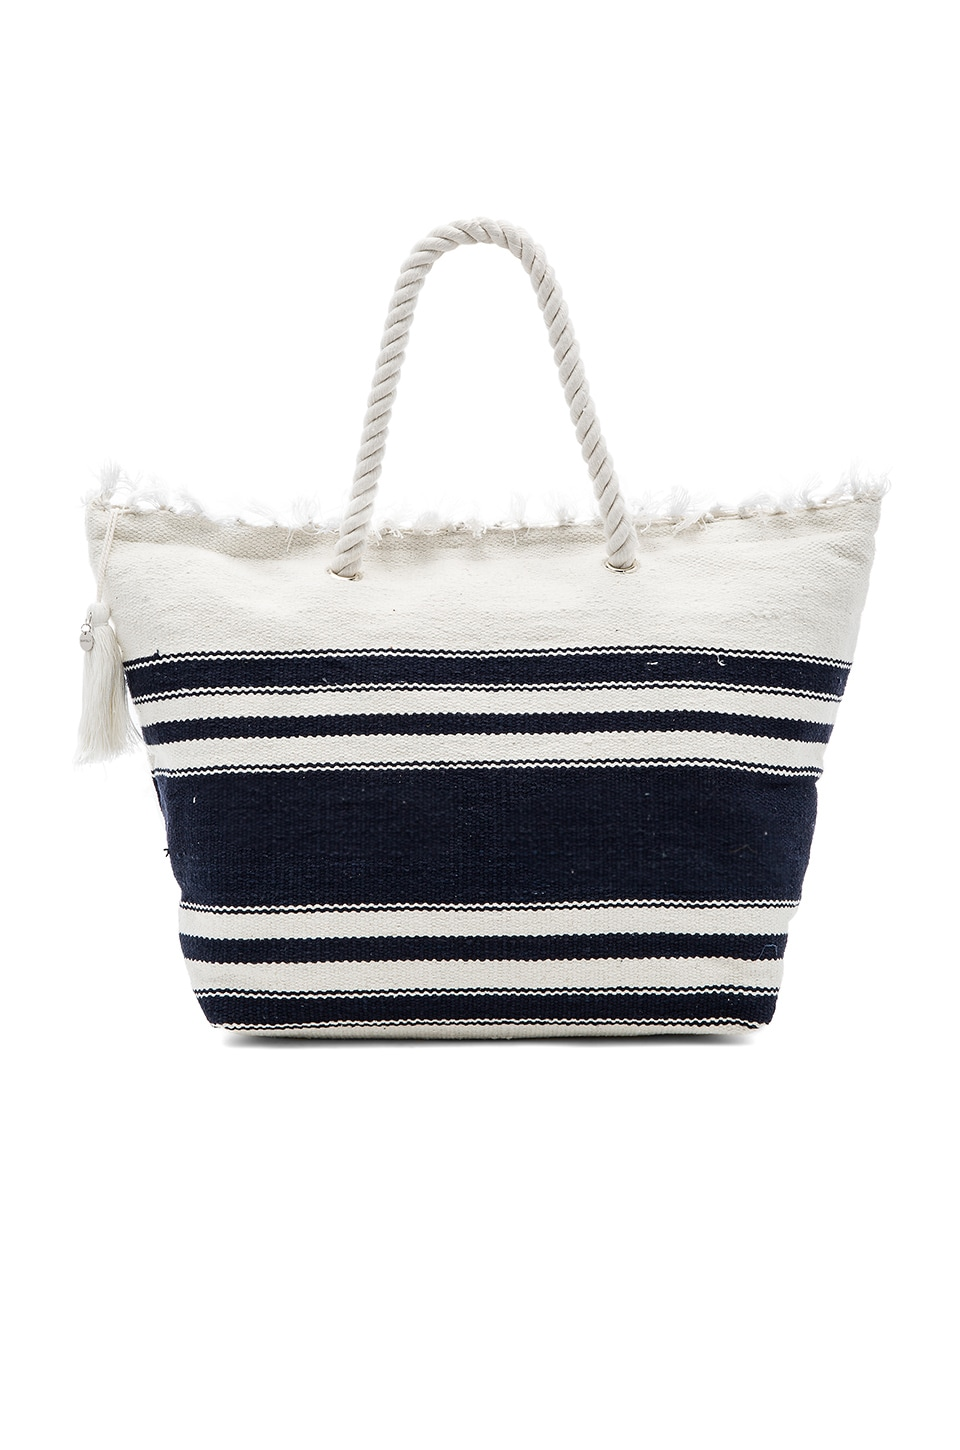 Seafolly Carried Away Riviera Tote in Indigo & White